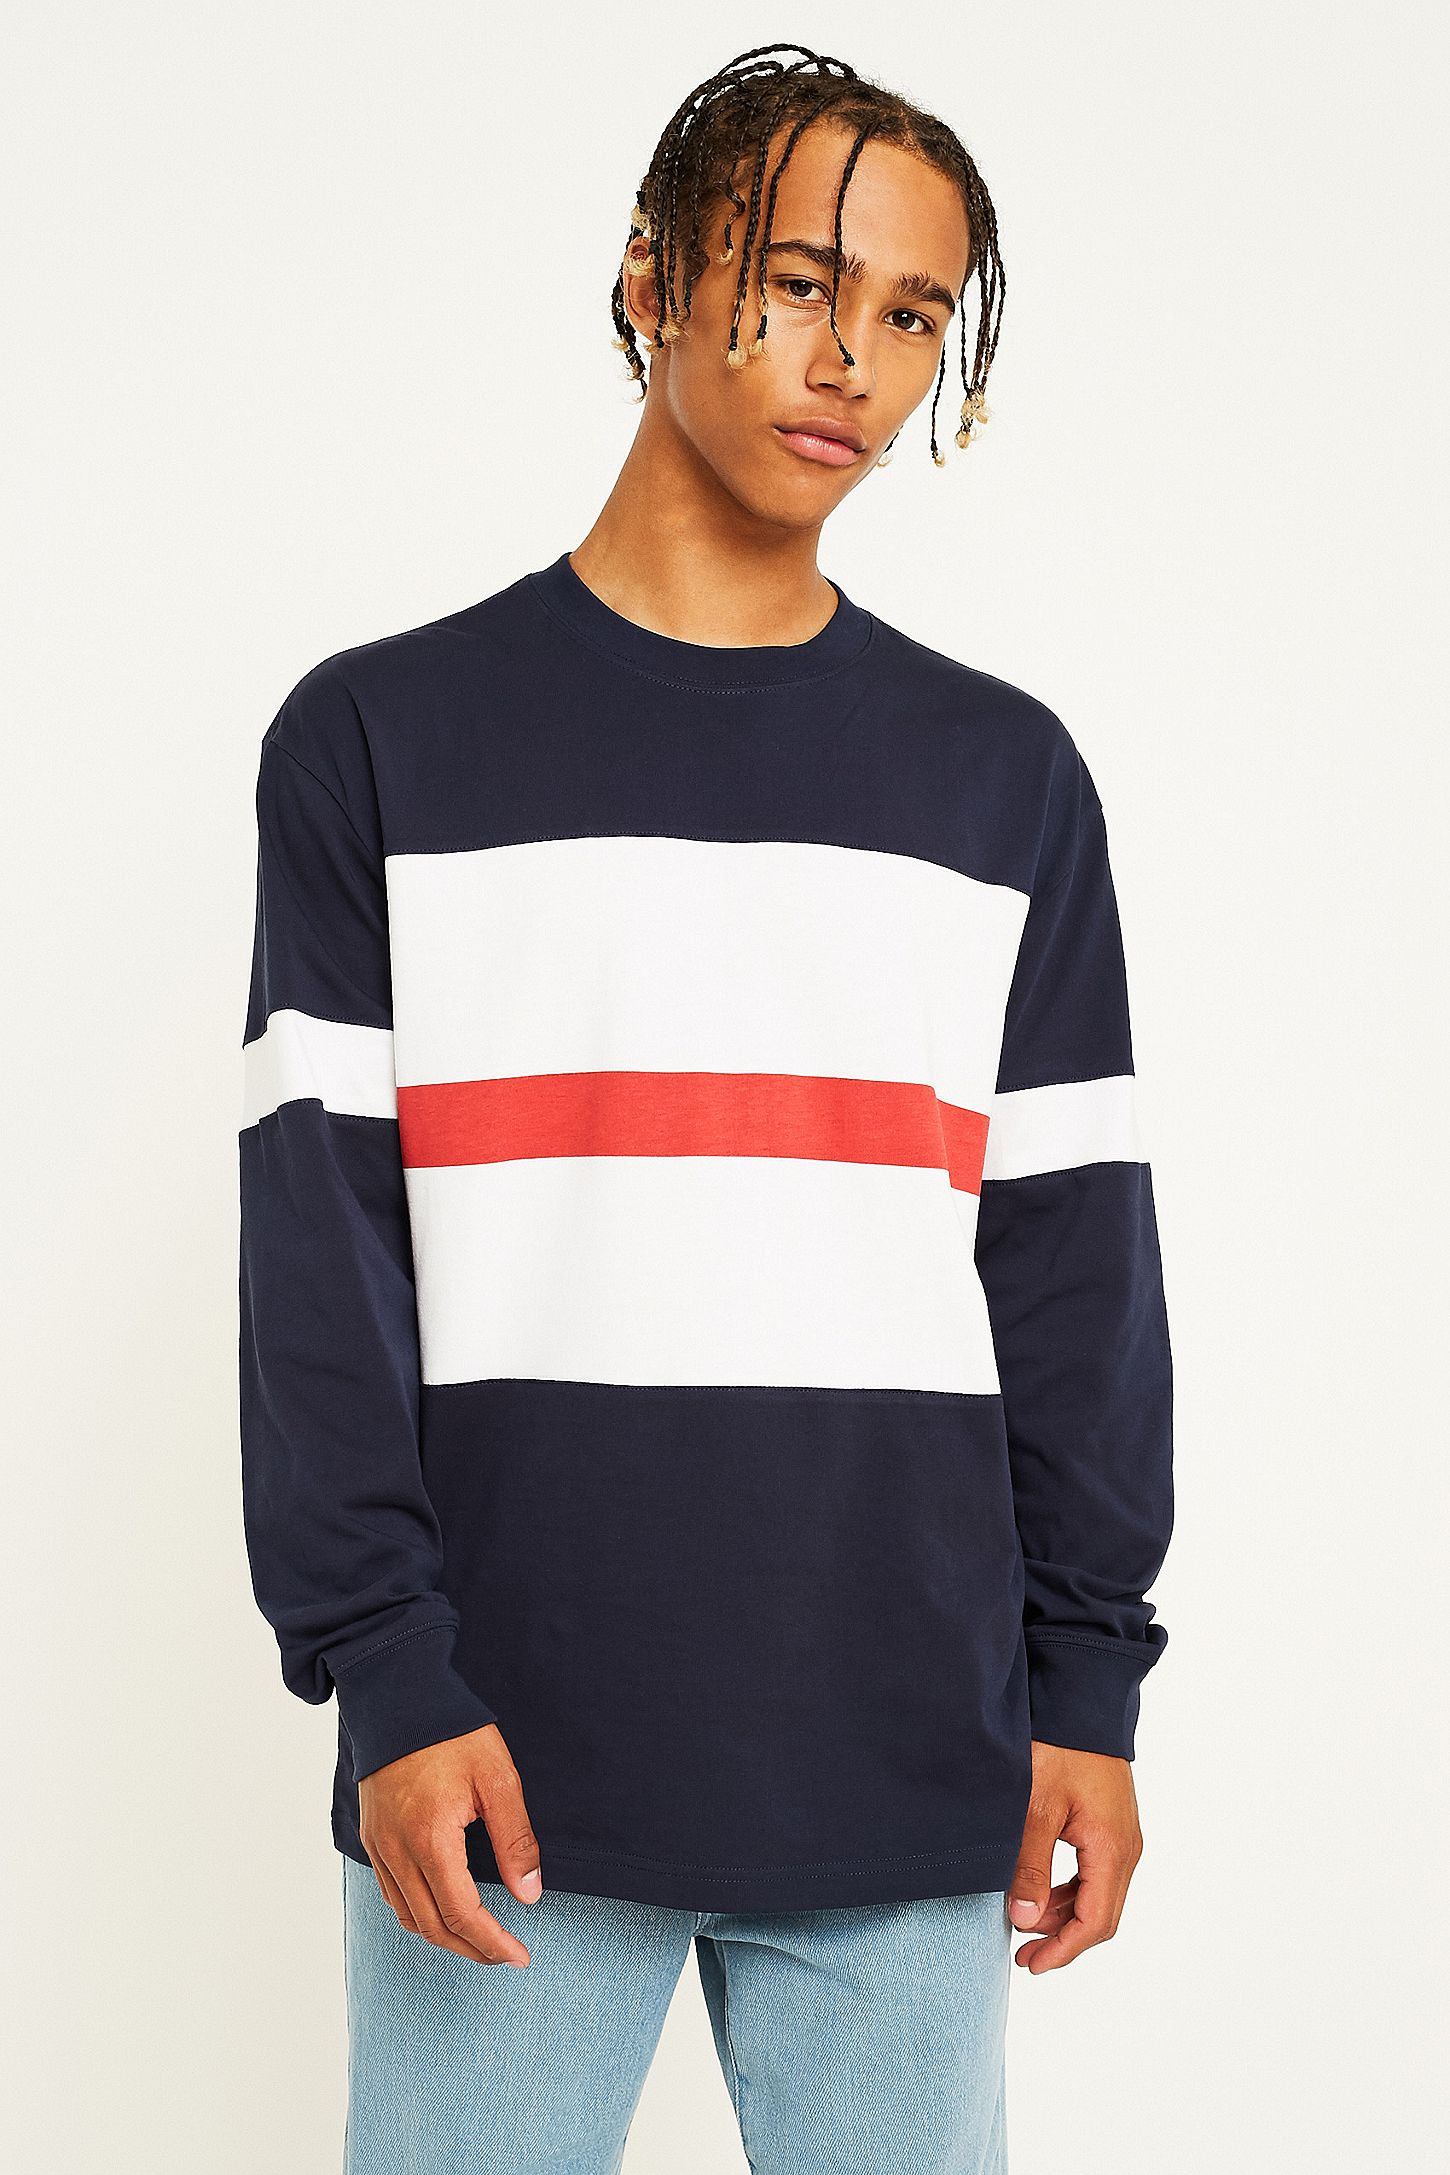 c49eee2c48 Orsman Bow Striped Navy Long-Sleeve T-Shirt | Urban Outfitters UK